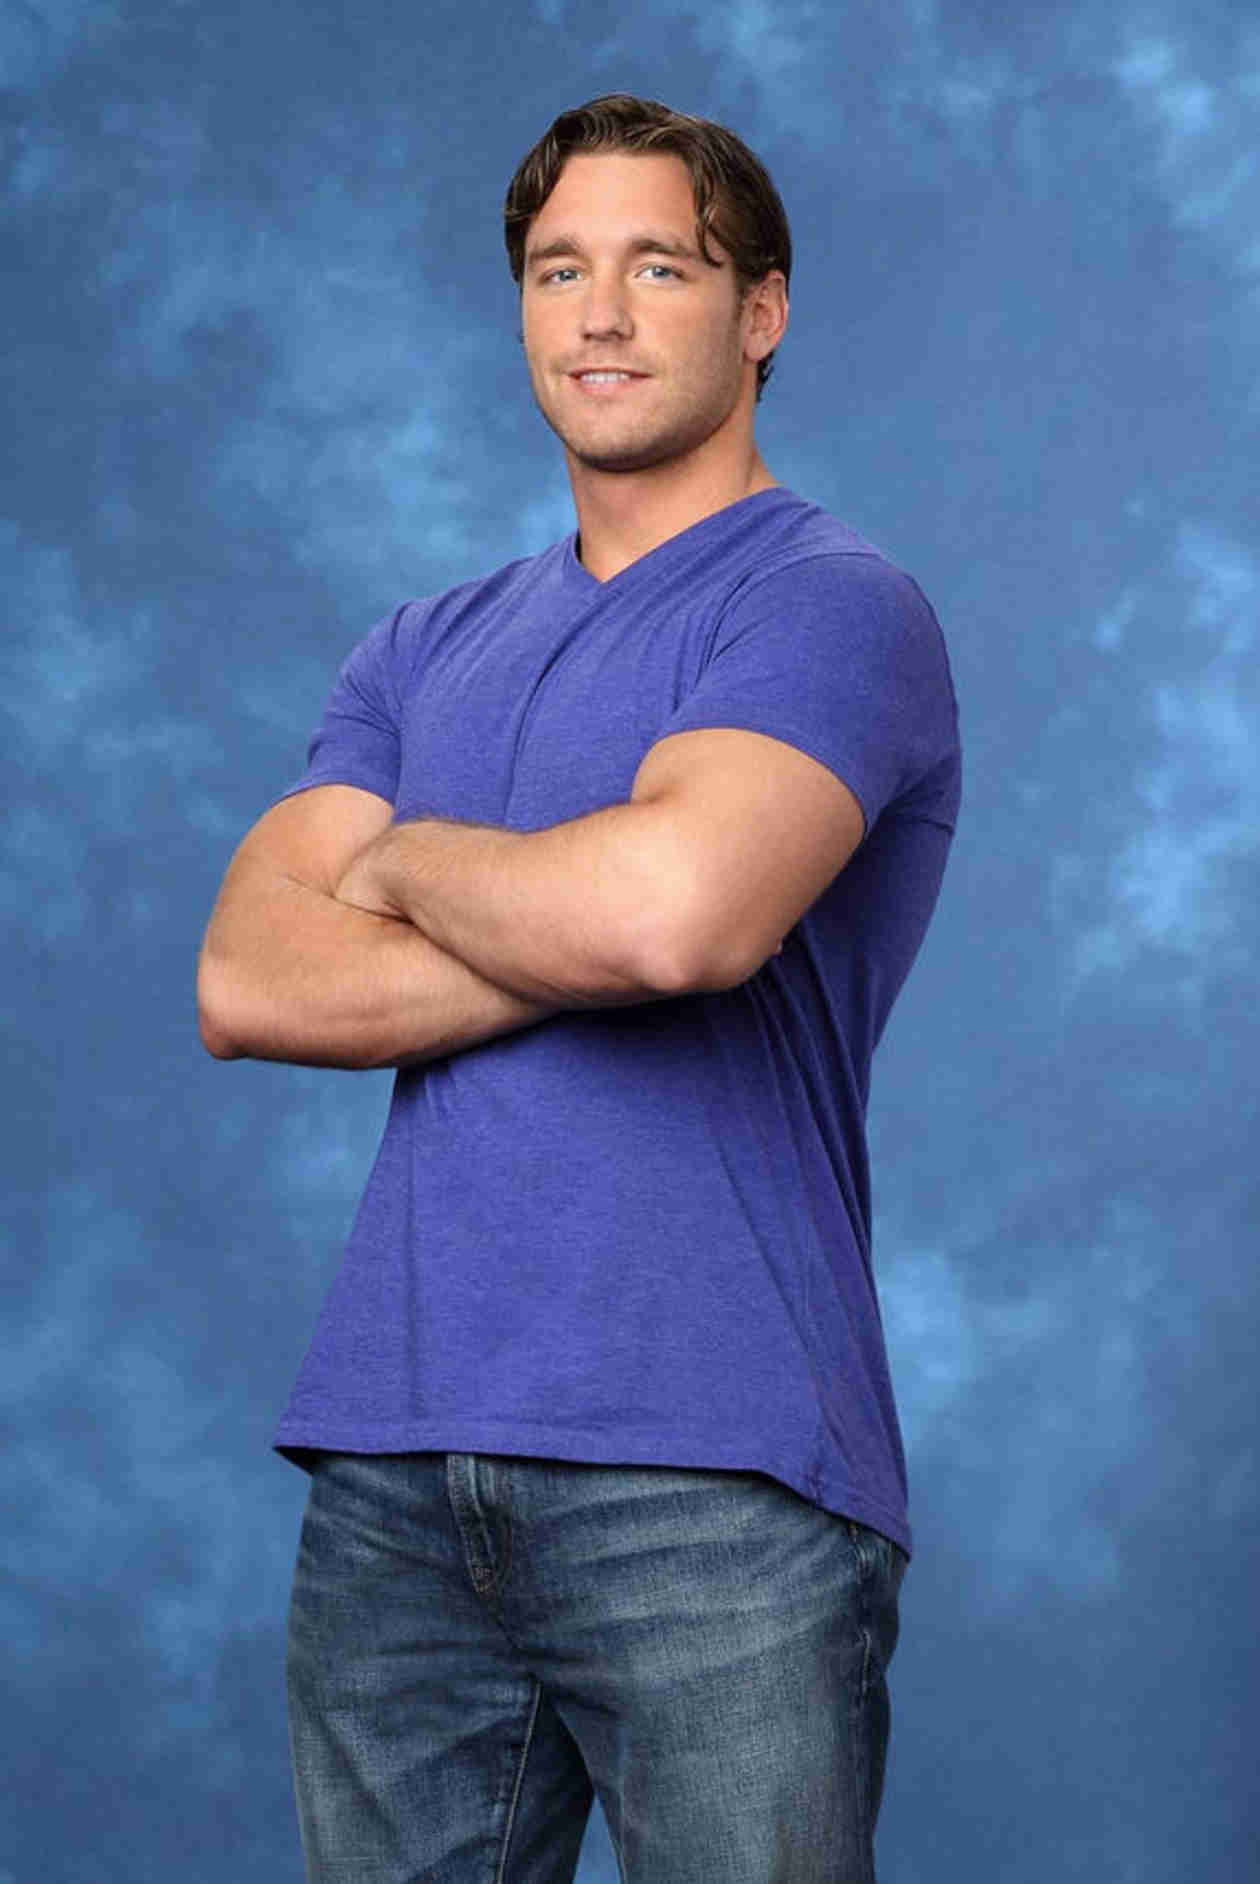 Bachelorette 2014: Dylan Petitt Doesn't Think Andi Dorfman and Josh Murray Would Last